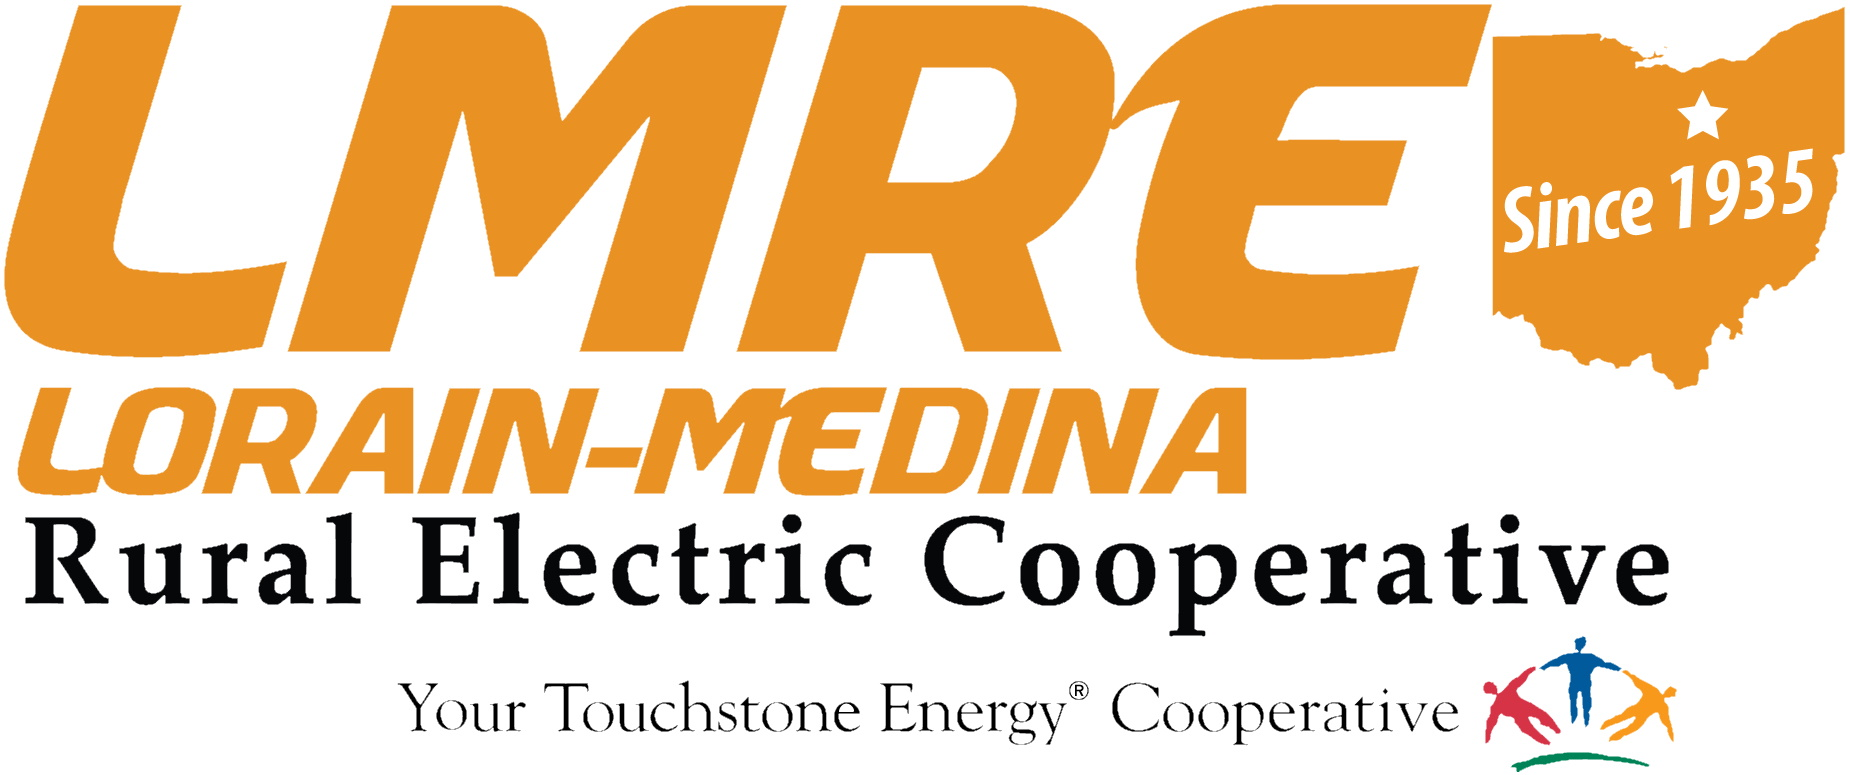 Lorain-Medina Electric Cooperative